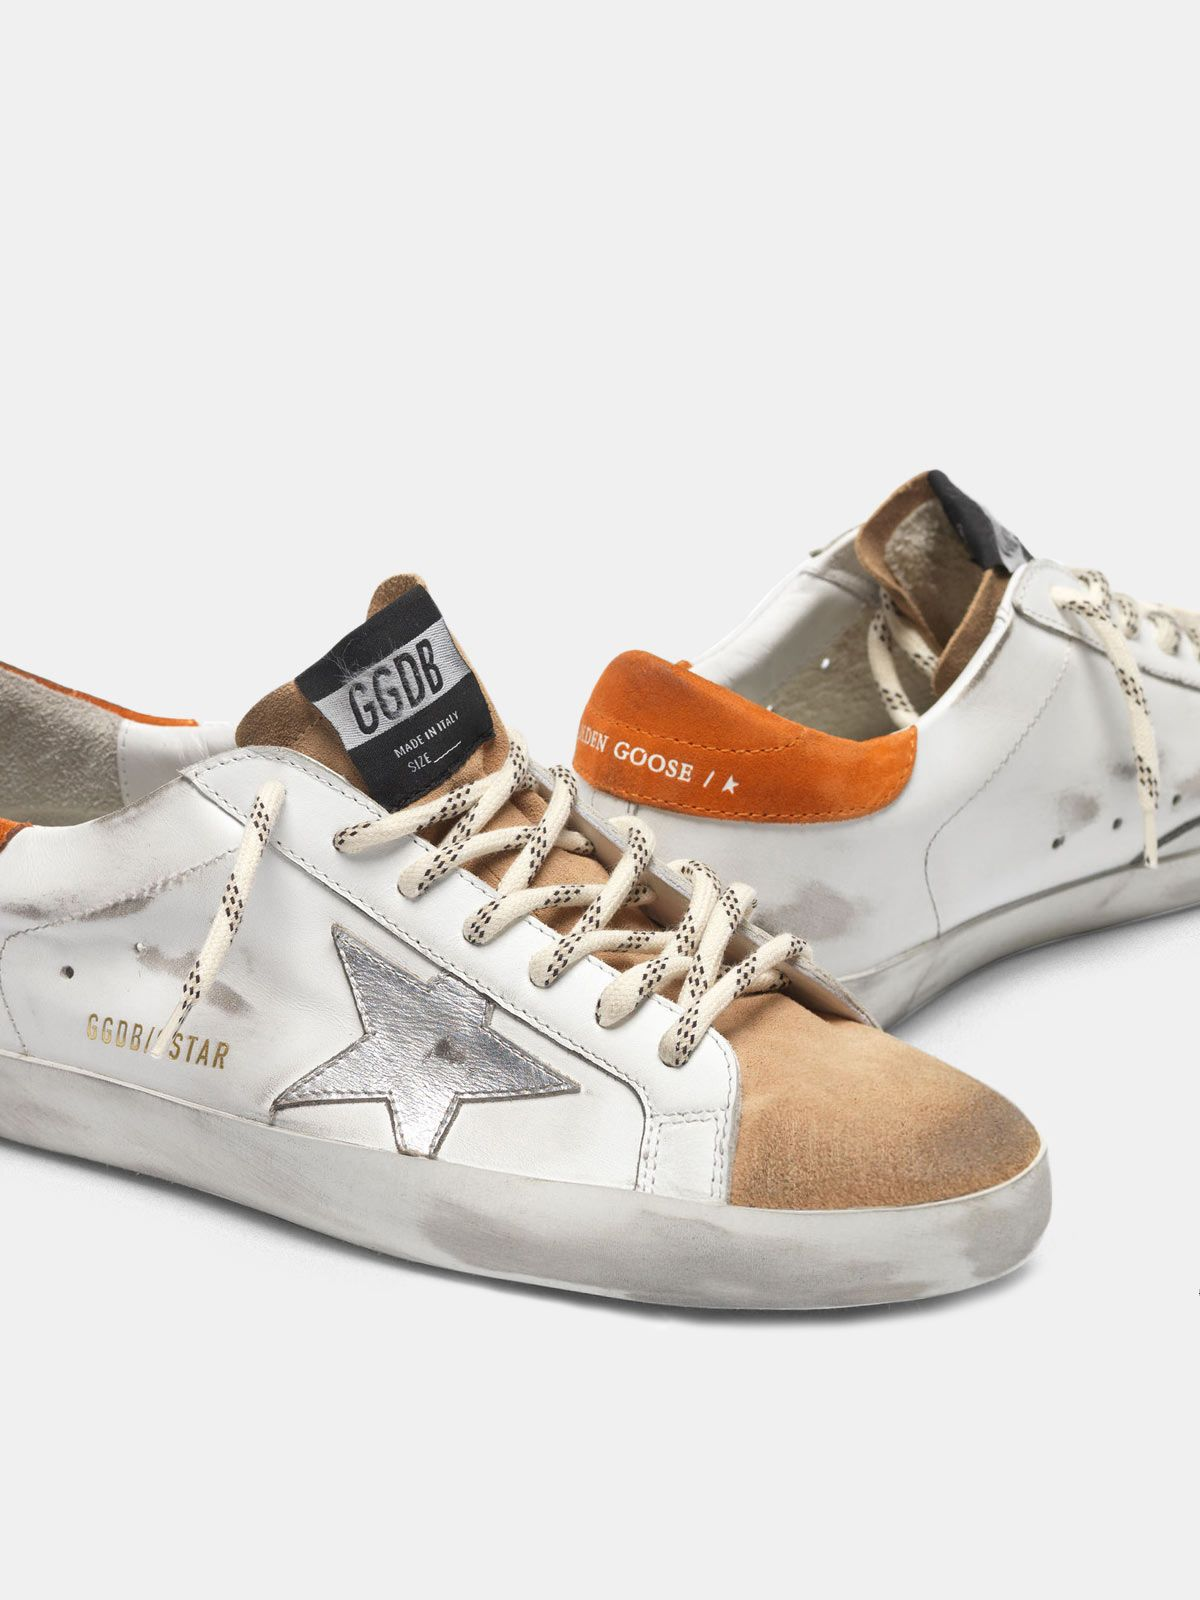 Golden Goose - Sneakers Superstar bicolore con stella argento in